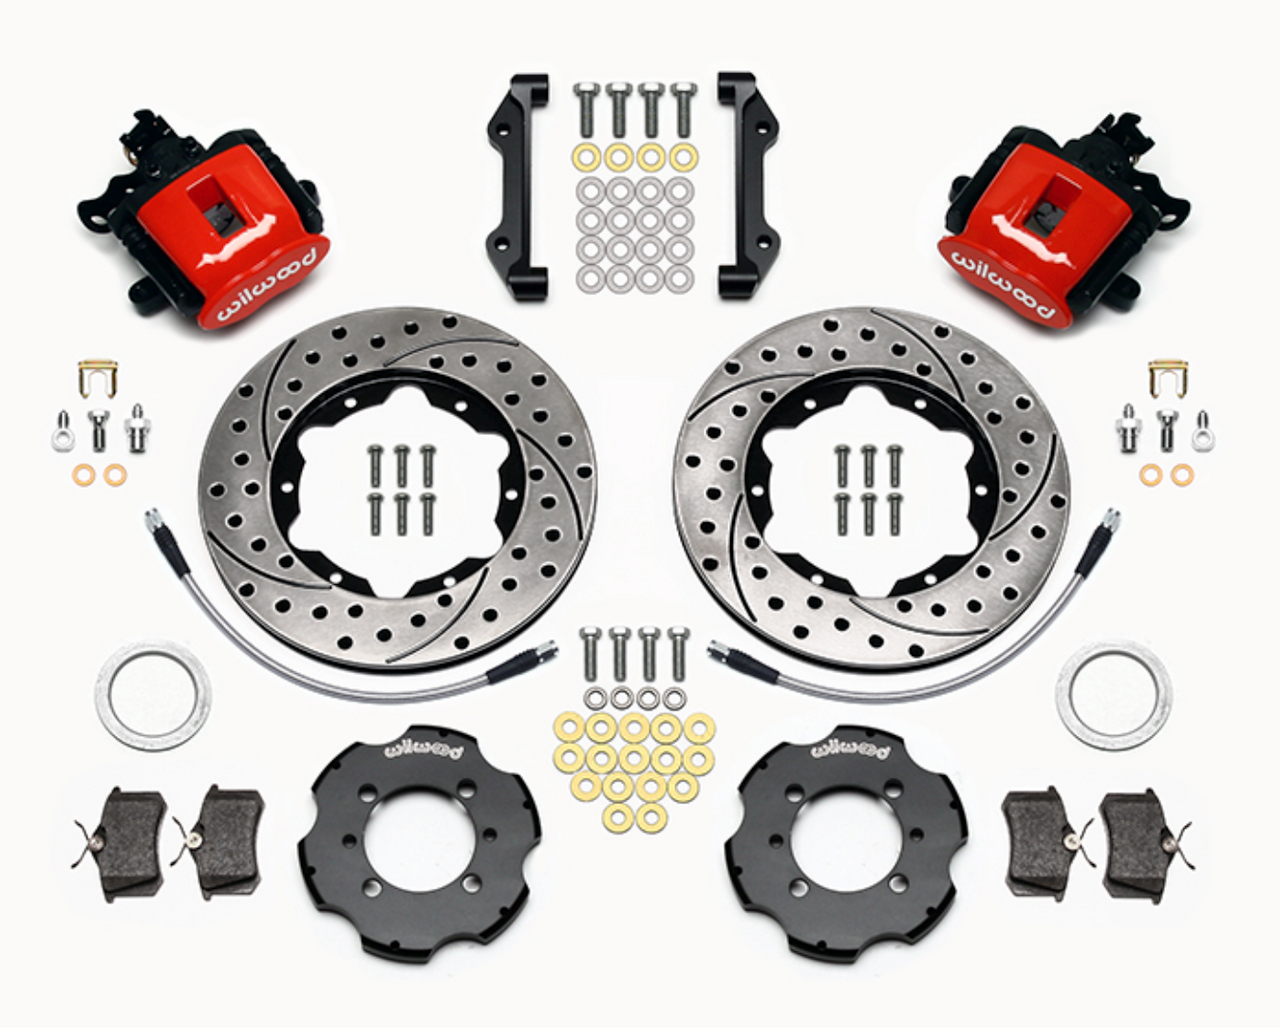 2012-on FIAT 500 Wilwood Rear Brake kit - Red Calipers - Auto Ricambi